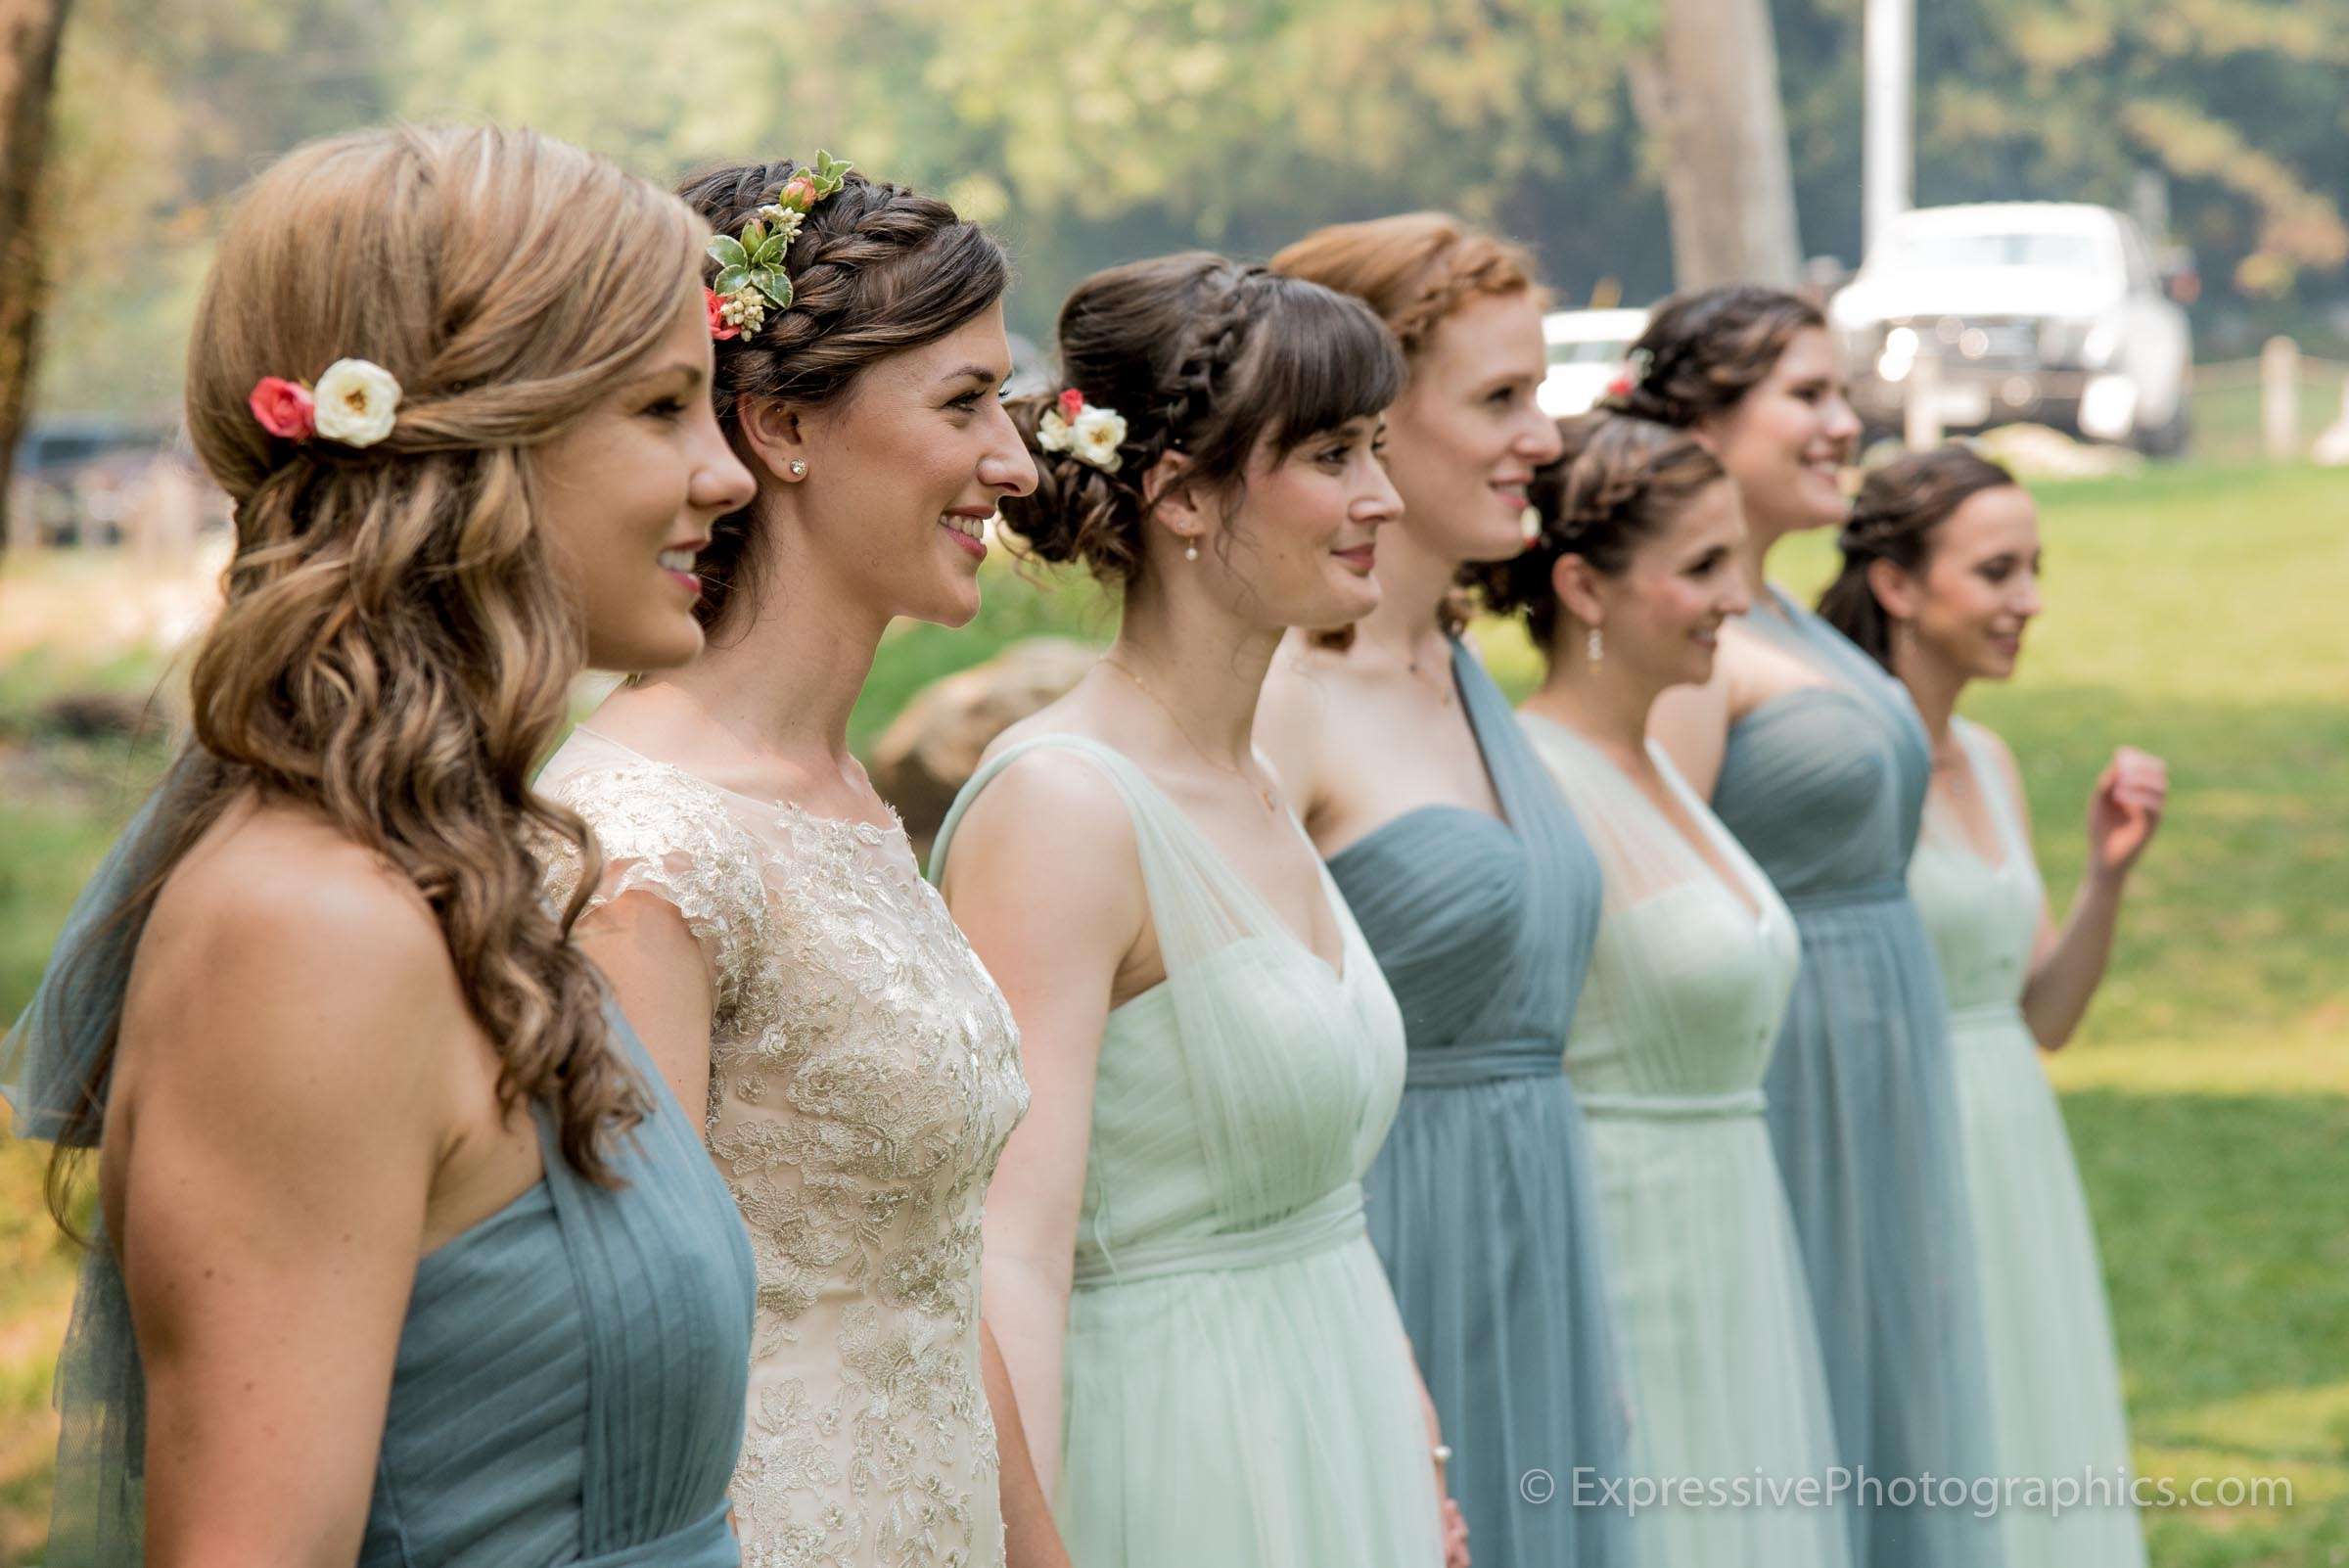 Expressive-Photographics-bridesmaids-greek-goddesses-20160723_0165.jpg